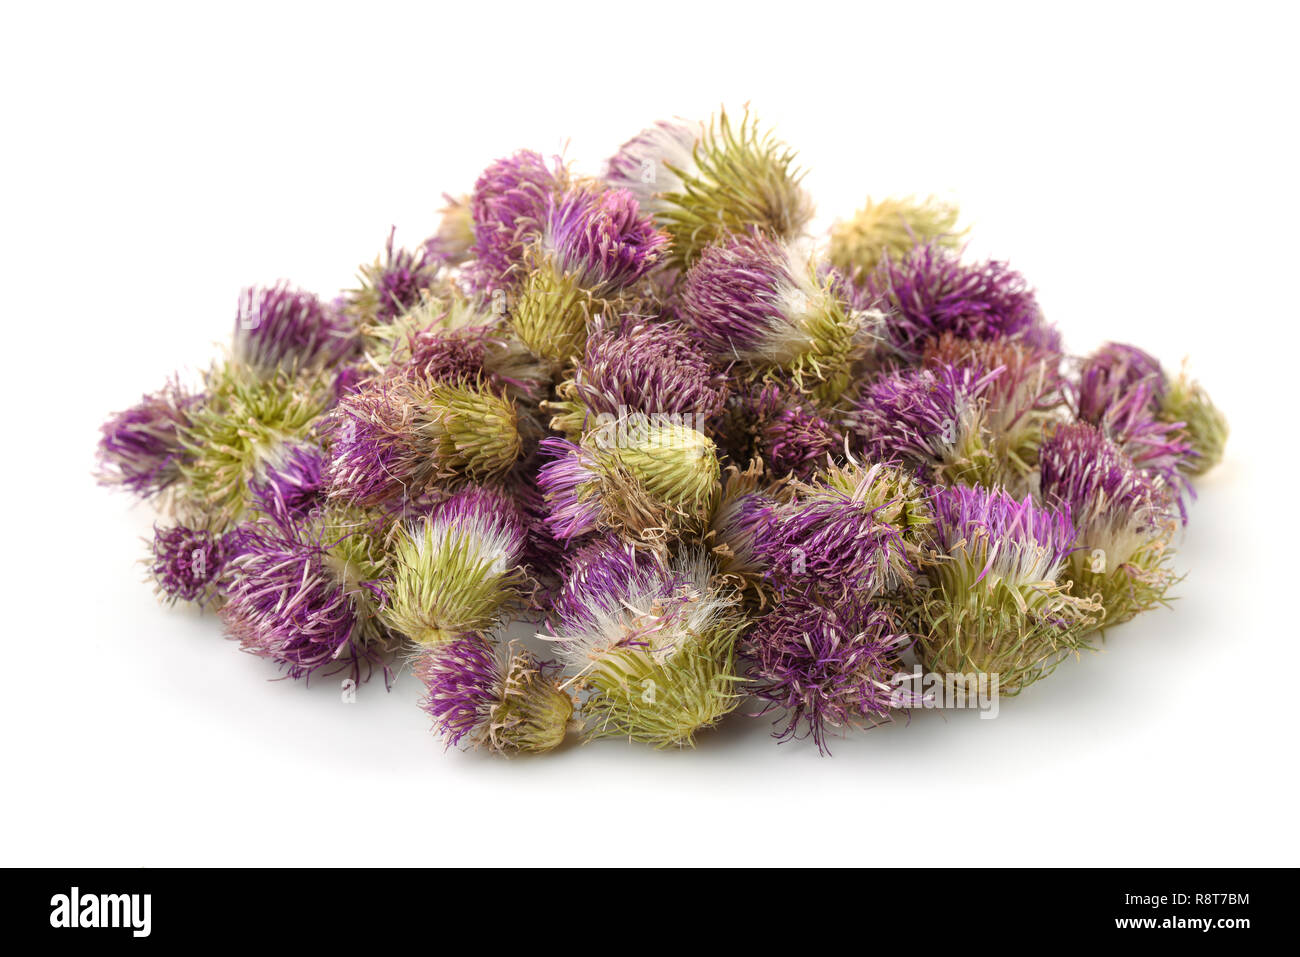 Pile of dried cotton thistle flowers isolated on white - Stock Image